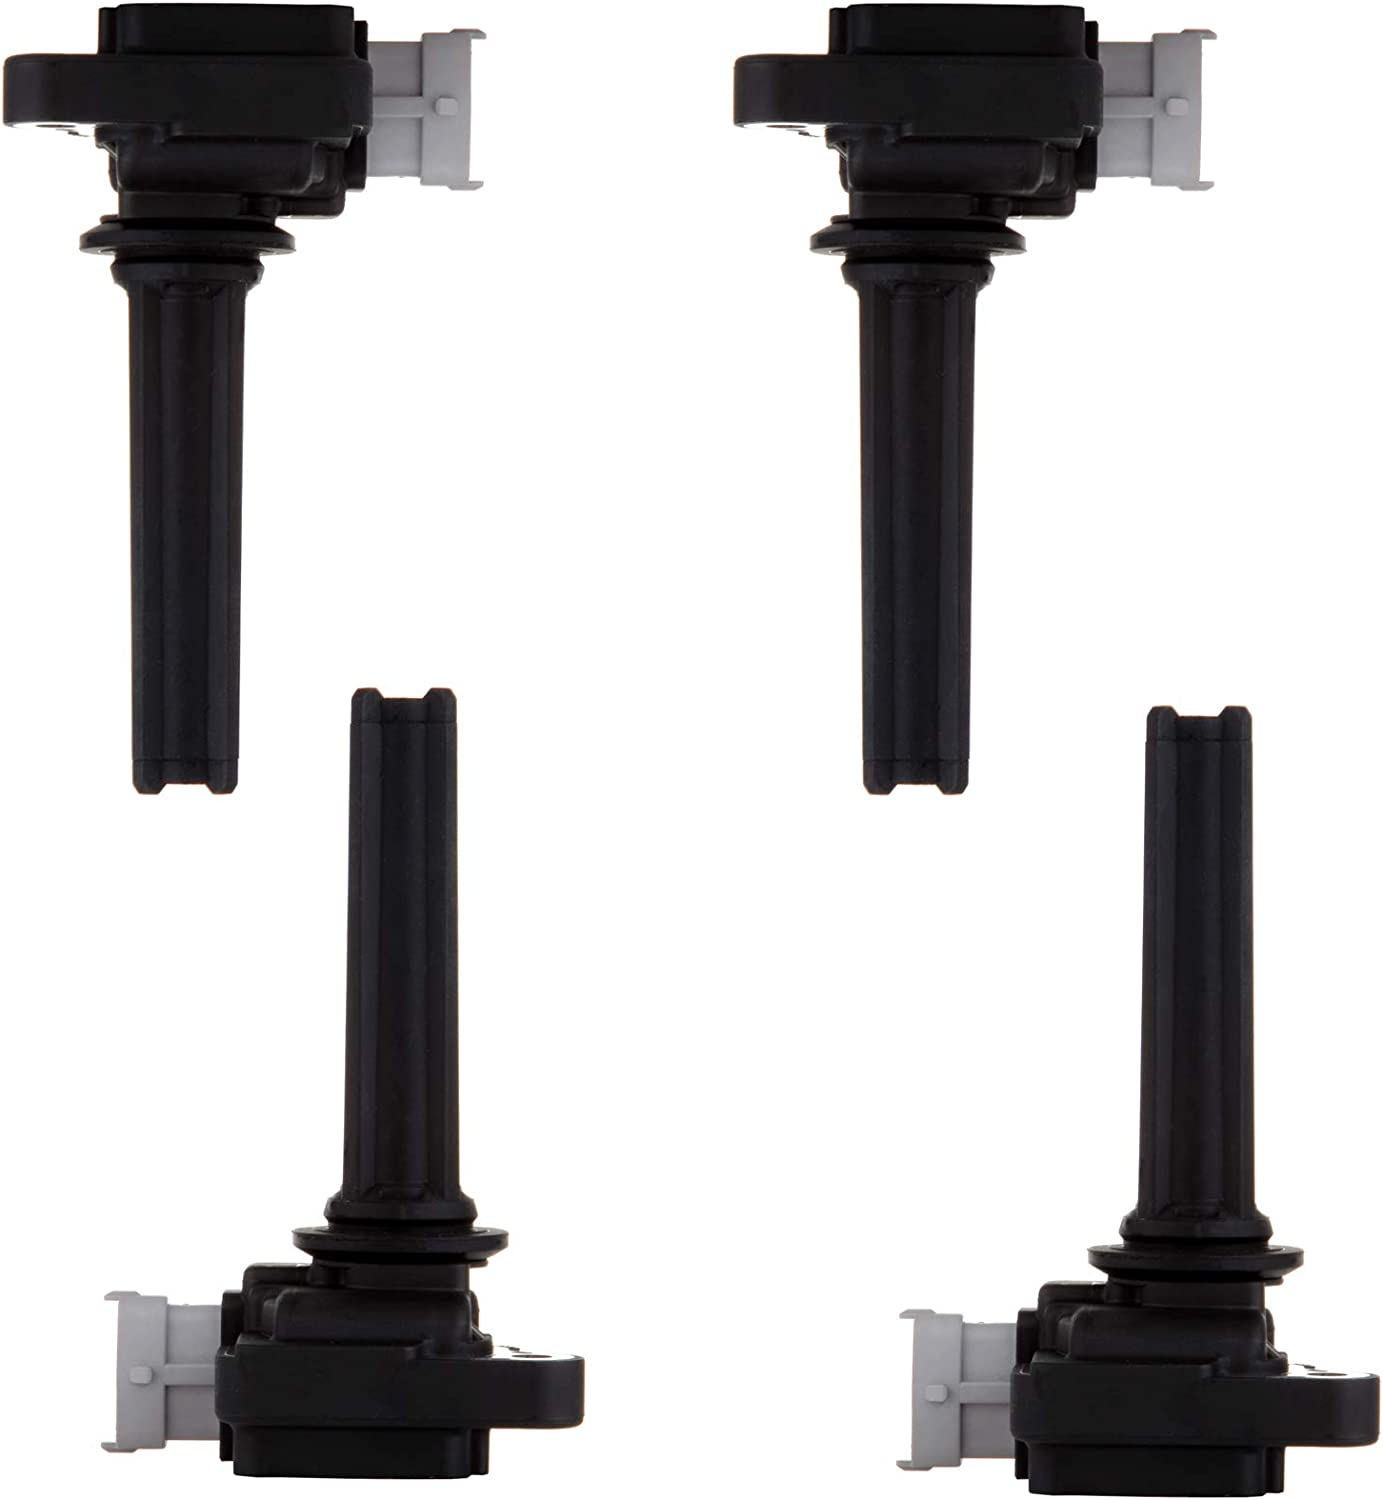 WHEELTECH Ignition Coils Compatible with for Satur-n Ion Max 60% OFF Chev-y Sacramento Mall